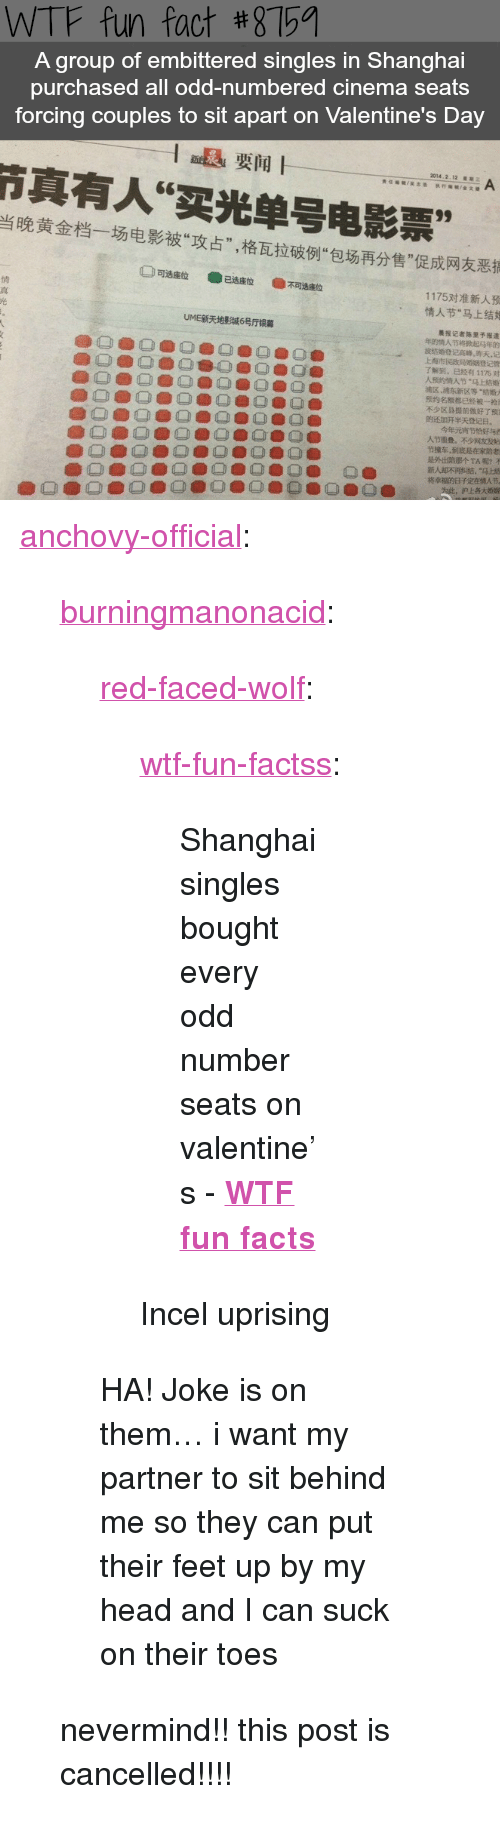 "wtf fun facts: WTF fun fact #8759  A group of embittered singles in Shanghai  purchased all odd-numbered cinema seats  forcing couples to sit apart on Valentine's Day  1退要闻|  真有人""买光单号电影票""  当晚黄金档一场电影被""攻占"",格瓦拉破例""包场再分售""促成网友恶  真  光  1175对准新人预  情人节""马上结  UME新天地影城6号厅  晨报记者陈里予  了解91""巳鯥利1175对  人预 人节""Q上结婚  MK,冰东新区等""nn  @oeb O @ O鲁0.) 0 0囗鲁  不少区 提前做好r51  还加开半天登ee.  今年元宵  @O@O@O @ O ® O  O.  O.  柊幸福的日子定!  沪上各 <p><a href=""http://anchovy-official.tumblr.com/post/174243197680/burningmanonacid-red-faced-wolf"" class=""tumblr_blog"">anchovy-official</a>:</p>  <blockquote><p><a href=""http://burningmanonacid.tumblr.com/post/174242686065/red-faced-wolf-wtf-fun-factss-shanghai"" class=""tumblr_blog"">burningmanonacid</a>:</p><blockquote> <p><a href=""http://red-faced-wolf.tumblr.com/post/174177290740/wtf-fun-factss-shanghai-singles-bought-every"" class=""tumblr_blog"">red-faced-wolf</a>:</p>  <blockquote> <p><a href=""http://wtffunfact.com/post/173997641387/shanghai-singles-bought-every-odd-number-seats-on"" class=""tumblr_blog"">wtf-fun-factss</a>:</p>  <blockquote><p>Shanghai singles bought every odd number seats on valentine's - <b><a href=""https://t.umblr.com/redirect?z=http%3A%2F%2Fwtffunfact.com%2F&amp;t=ZTNiYmE3N2NjNTFlMGY1YzFkNmQ4N2E3M2E5NDY0NjFhZWJlYjY0NixhMEZDdVdoSw%3D%3D&amp;b=t%3Az9OKwGAR5vFReO8UIkz88w&amp;p=http%3A%2F%2Fwtffunfact.com%2Fpost%2F173584034182%2Faustralian-island-full-of-quokkas-the-happiest&amp;m=1"">WTF fun facts</a></b><br/></p></blockquote>  <p>Incel uprising </p> </blockquote>  <p>HA! Joke is on them… i want my partner to sit behind me so they can put their feet up by my head and I can suck on their toes </p> </blockquote> <p>nevermind!! this post is cancelled!!!!</p></blockquote>"